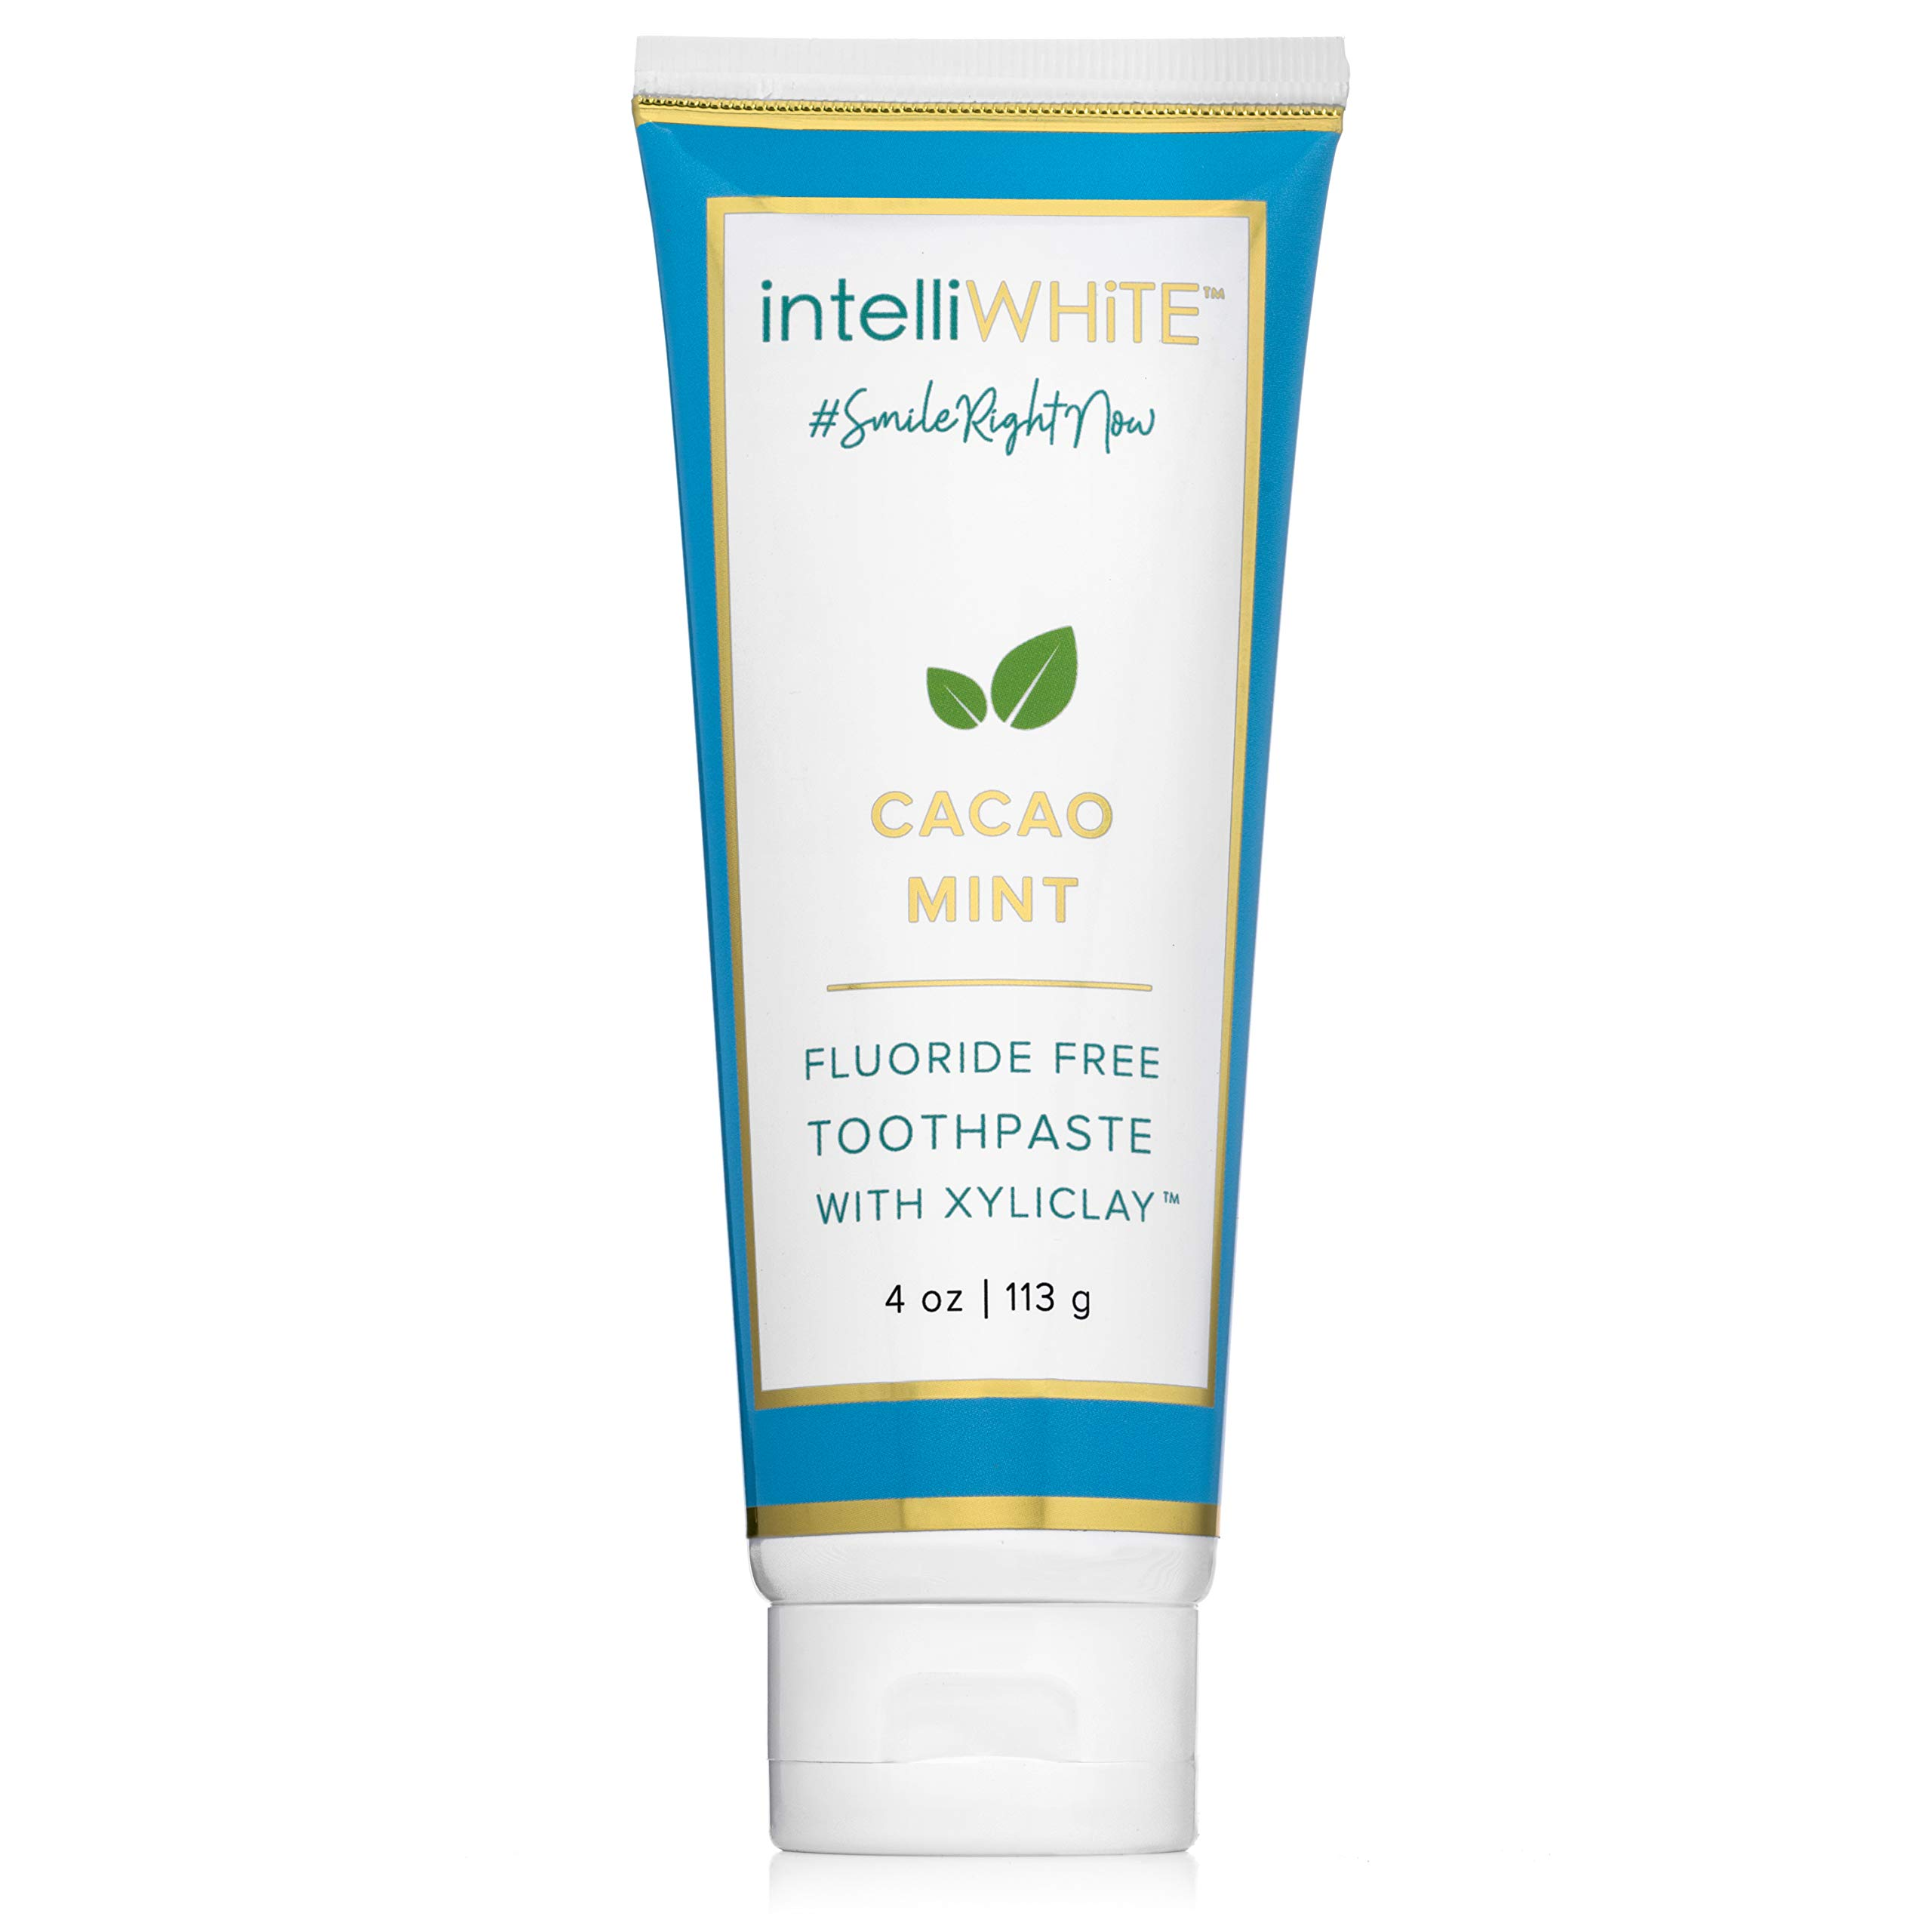 intelliWHiTE Naturally Crafted Cacao-Mint Fluoride-Free Toothpaste With Xyliclay - Cleanses & Polishes Teeth To a Glossed Finish, Removes Stains & Whitens, Aloe Vera & Bentonite Clay, Non Toxic, 4oz